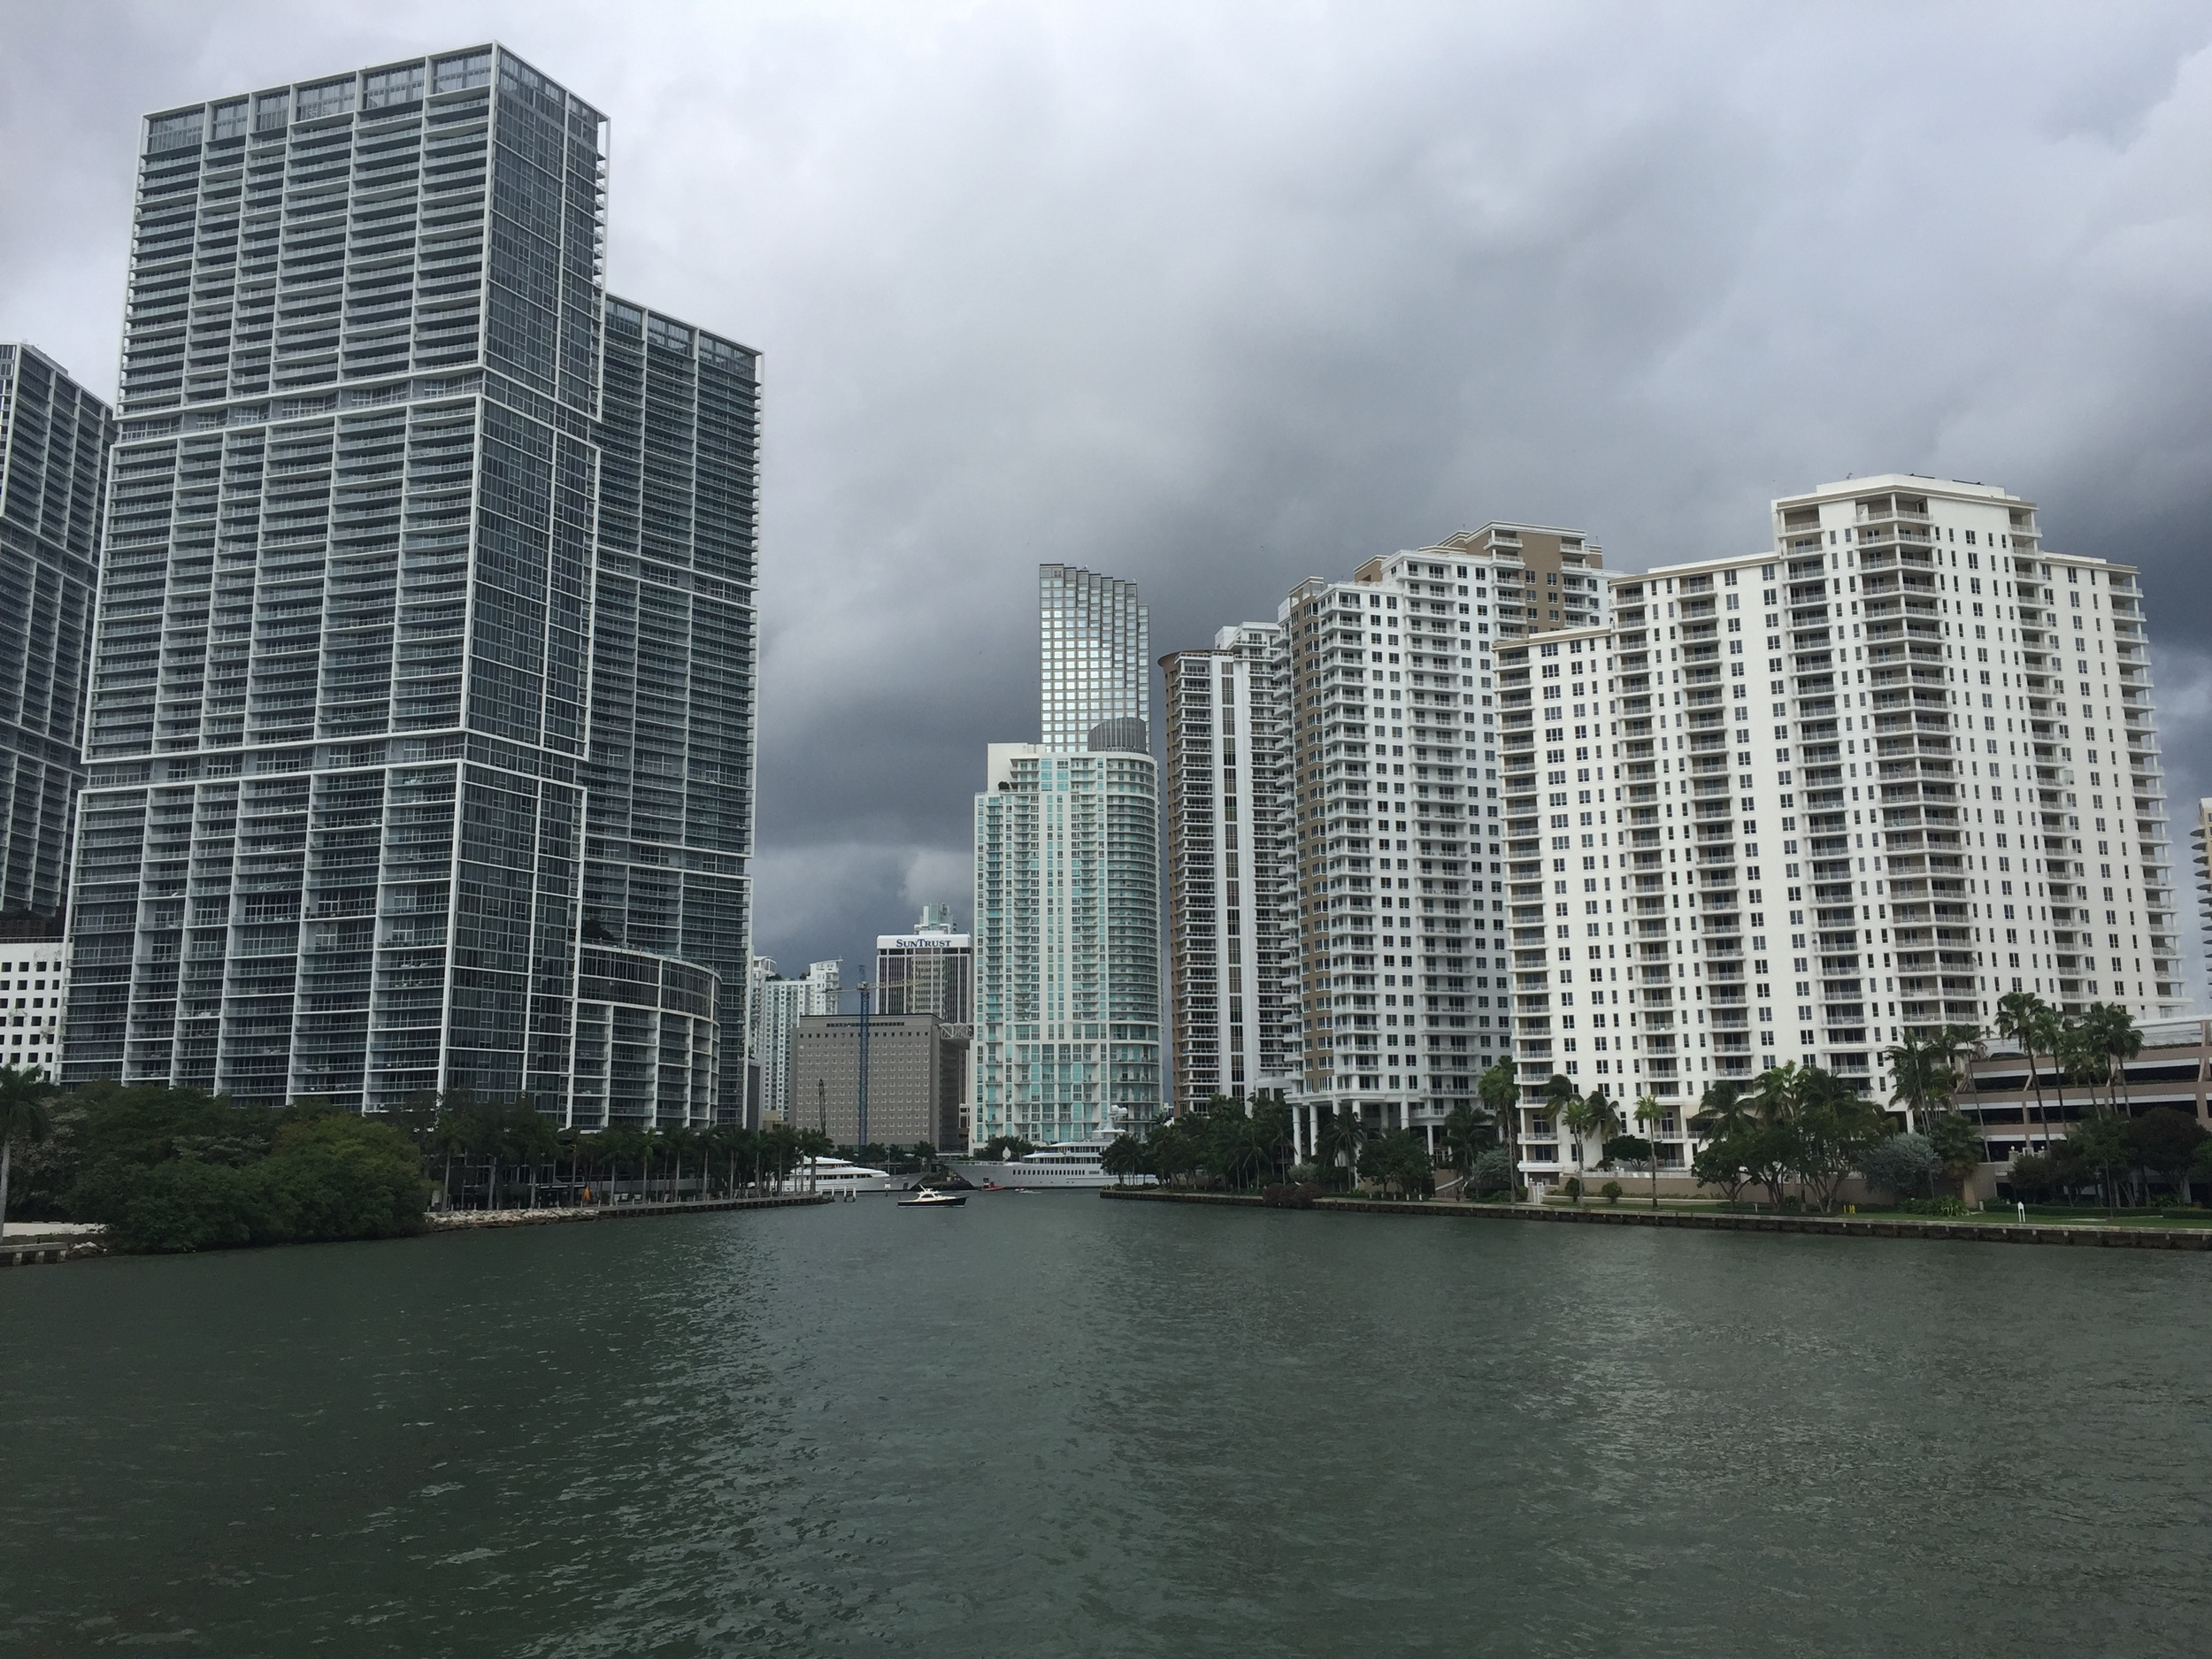 I love walking Brickell Key while in Miami, but where to stay?